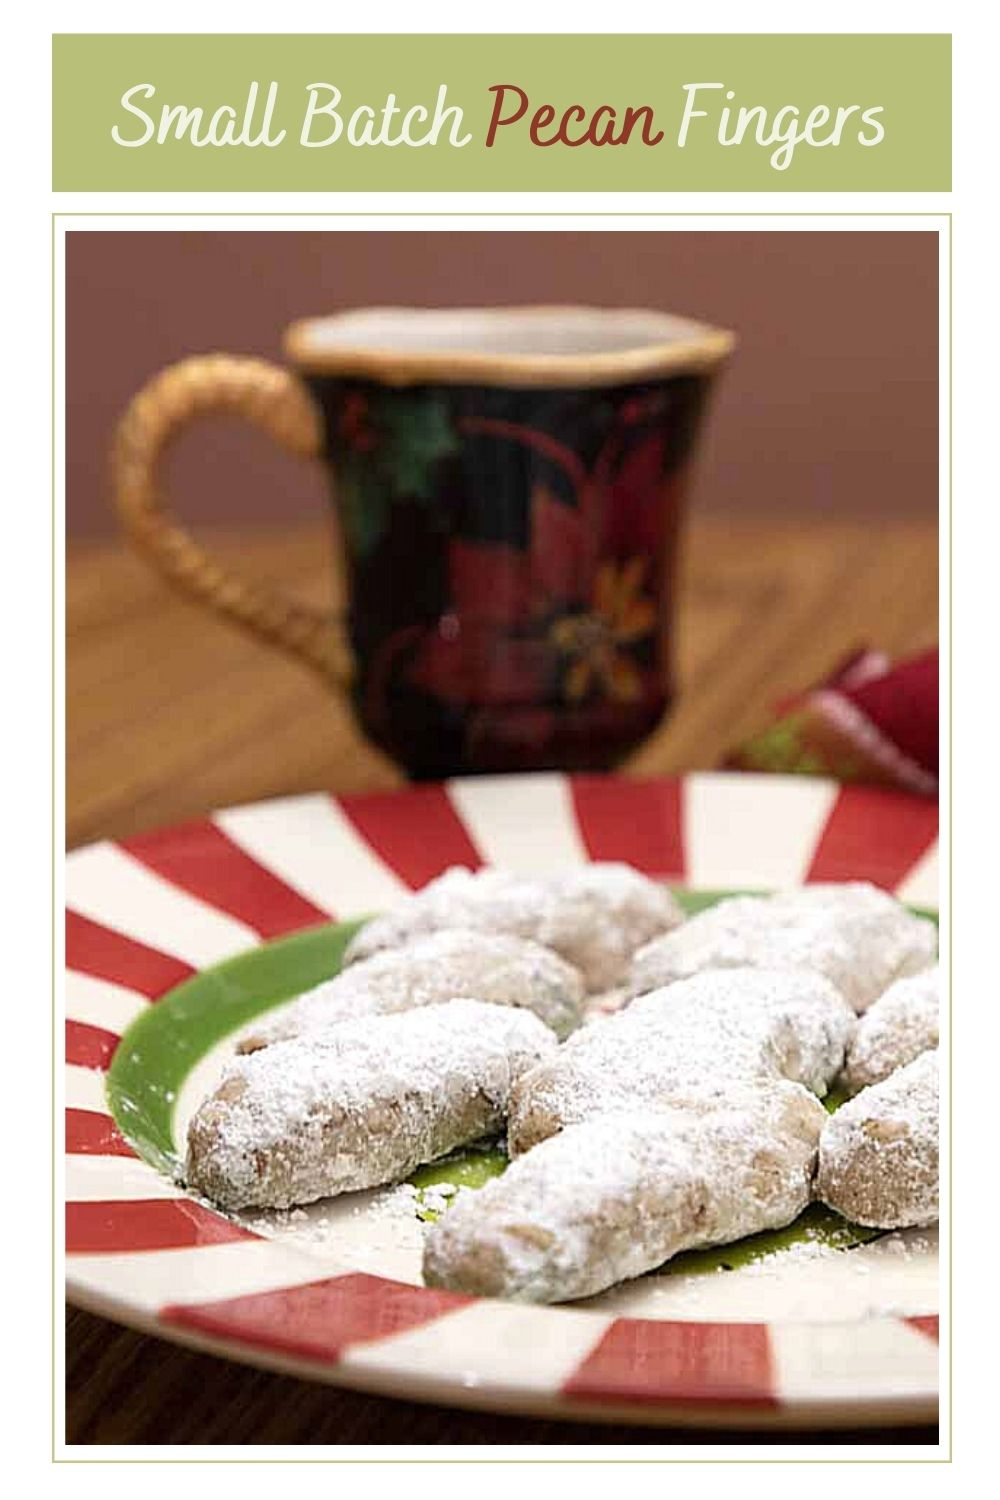 Classic Pecan Fingers are sweet, nutty & a favorite holiday cookie. Since parties are fewer & smaller this year, here's a small batch version.